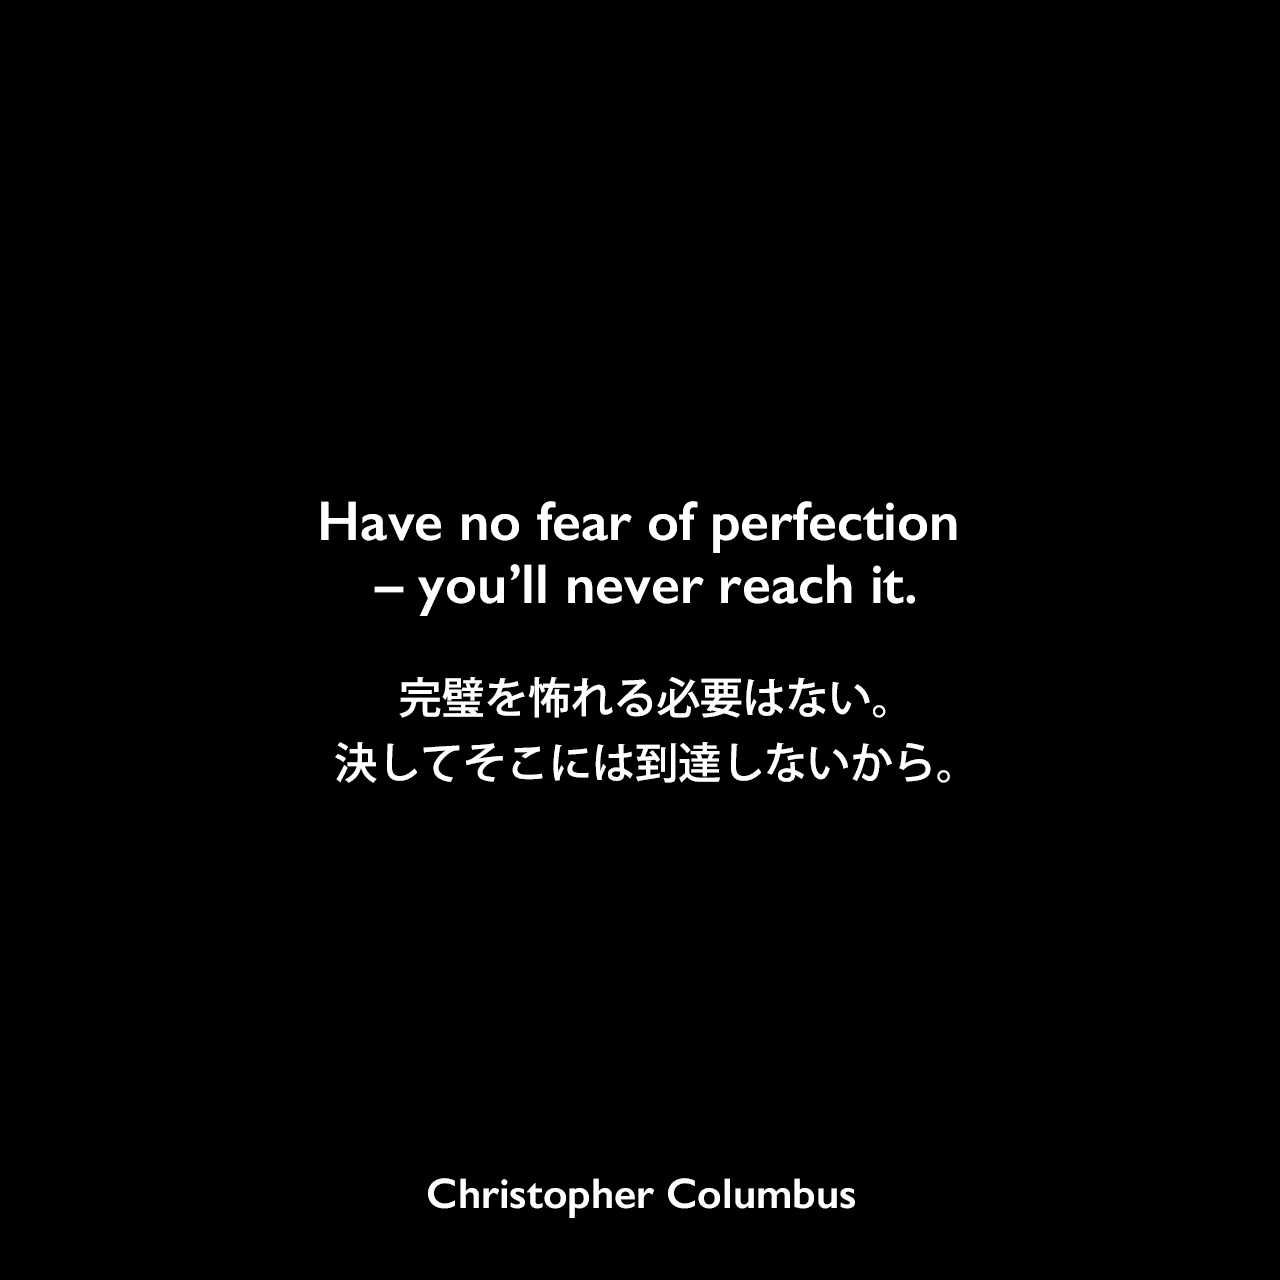 Have no fear of perfection – you'll never reach it.完璧を怖れる必要はない。決してそこには到達しないから。Christopher Columbus